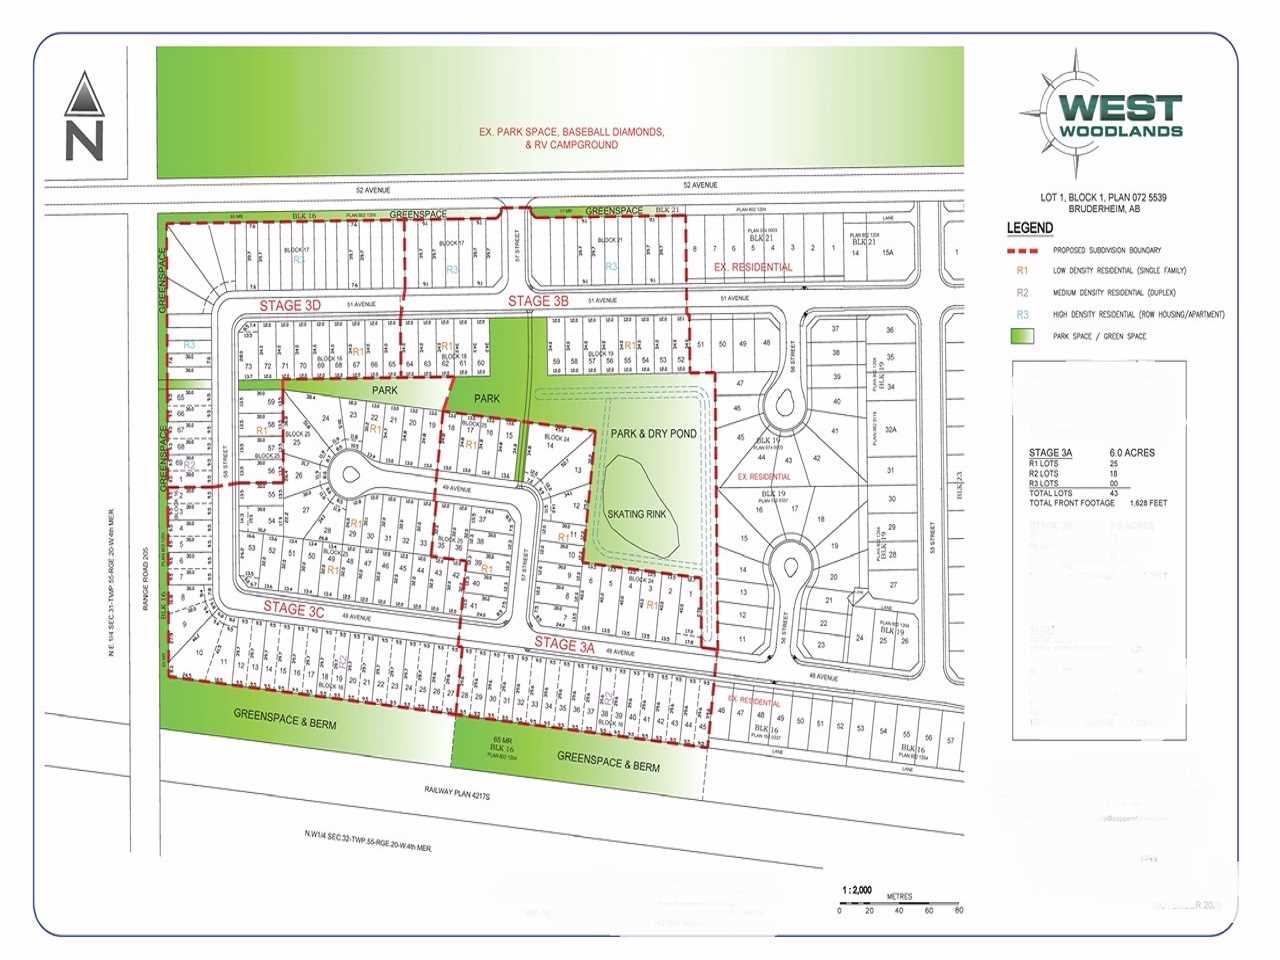 Future Lands , 25.9 AC ($63,700/acre).  West Woodlands in Bruderheim is 95% shovel-ready! We have opened up Stages 3A 3B 3C 3D. This 25.9 Acre project has a great mix of single-family, duplex & multi-family development proposed. The current site plan generates over 170 lots. Bruderheim is setup for opportunity & growth and is only 15 minutes from Fort Saskatchewan and 35 minutes from Edmonton! Tremendous small community for young families with a great K-9 school and several employment opportunities in the area. Outline Plan, Environmental, Geotechnical, Zoning, Pro-Forma, Planning & Engineering are complete and included in the sale. Zoning & Engineering can still be customized to suit the purchaser. This is a great opportunity for an investor, home builder or site works contractor.